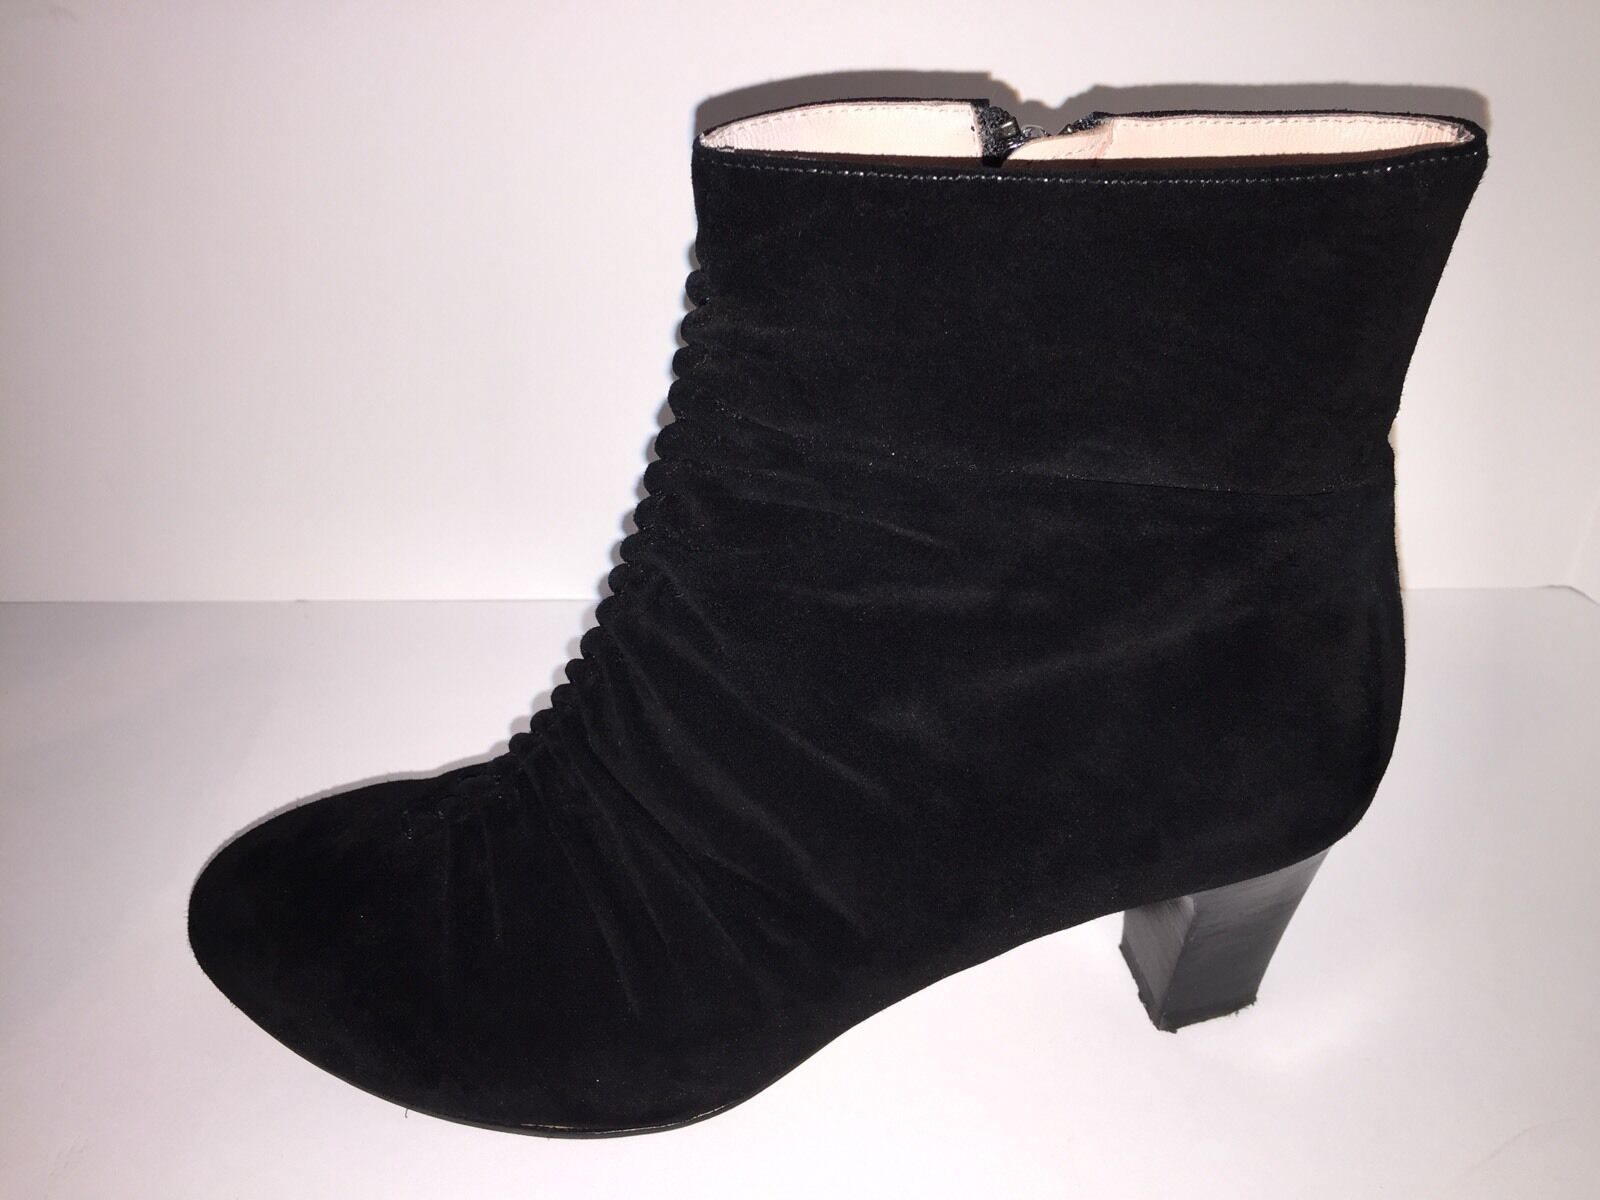 Taryn Rose $495 Black Suede Ankle Boots Ruching Leather Lined SZ 7 M